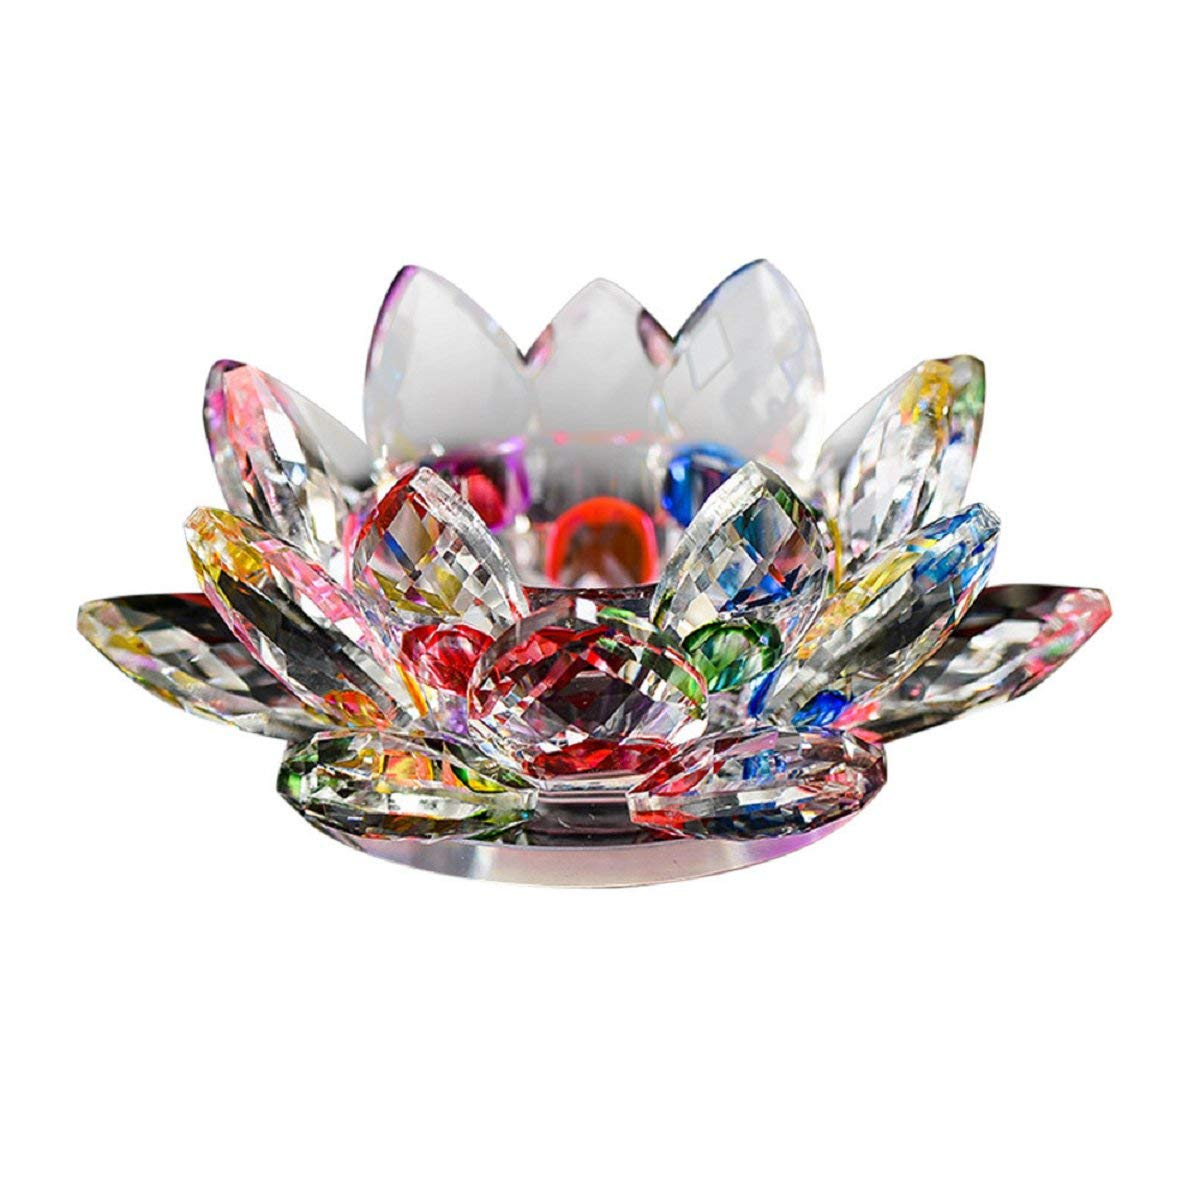 Crystal Candlestick, Putars Crystal Lotus Candlesticks Crystal Glass Lotus Flower Candle Tea Light Holder Buddhist Candlestick Colorful 80mm